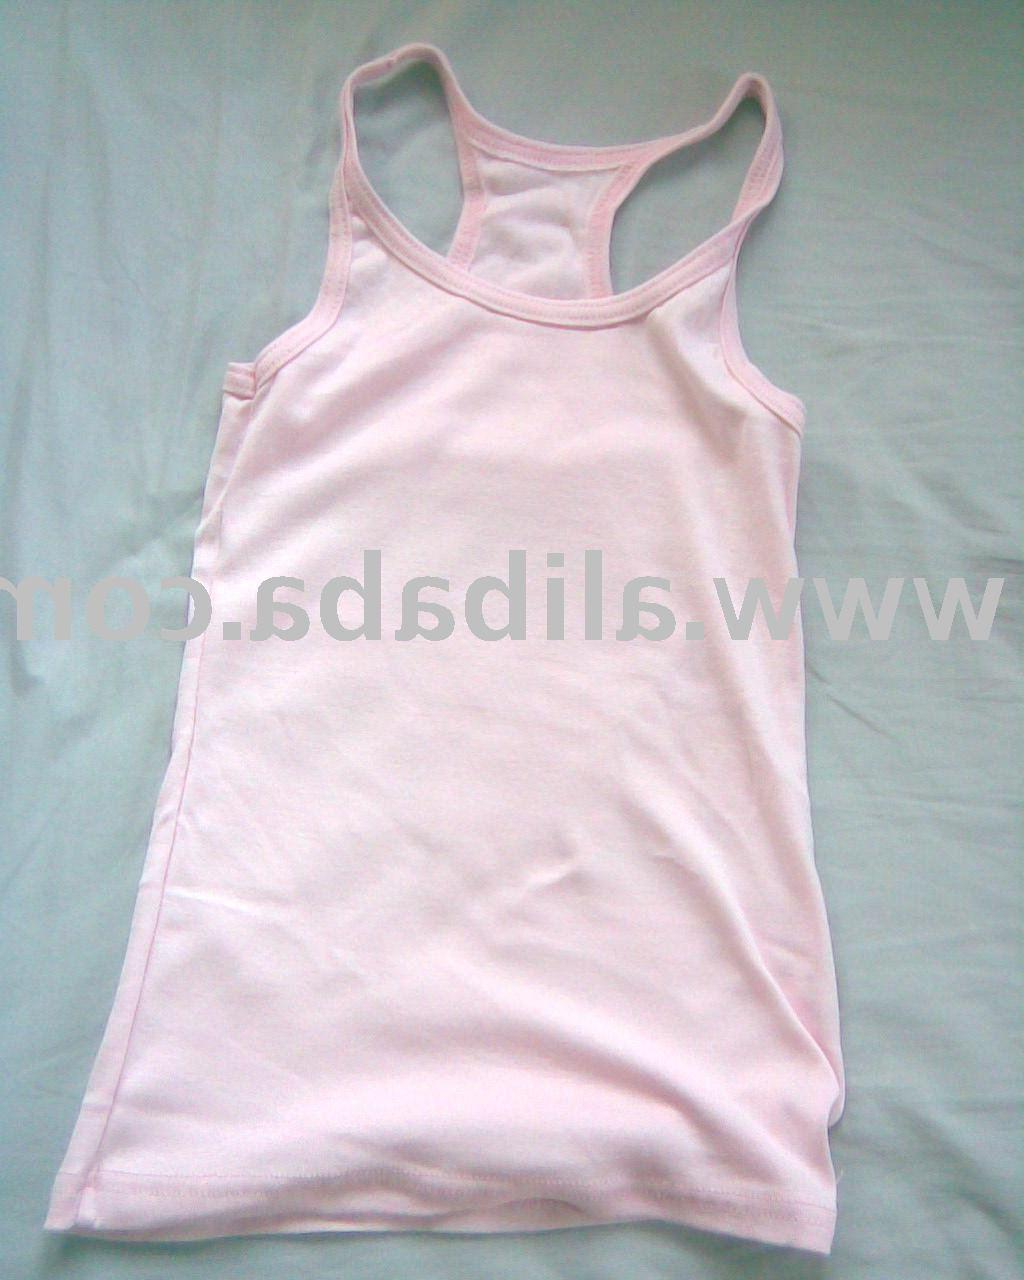 Pink plain racer back